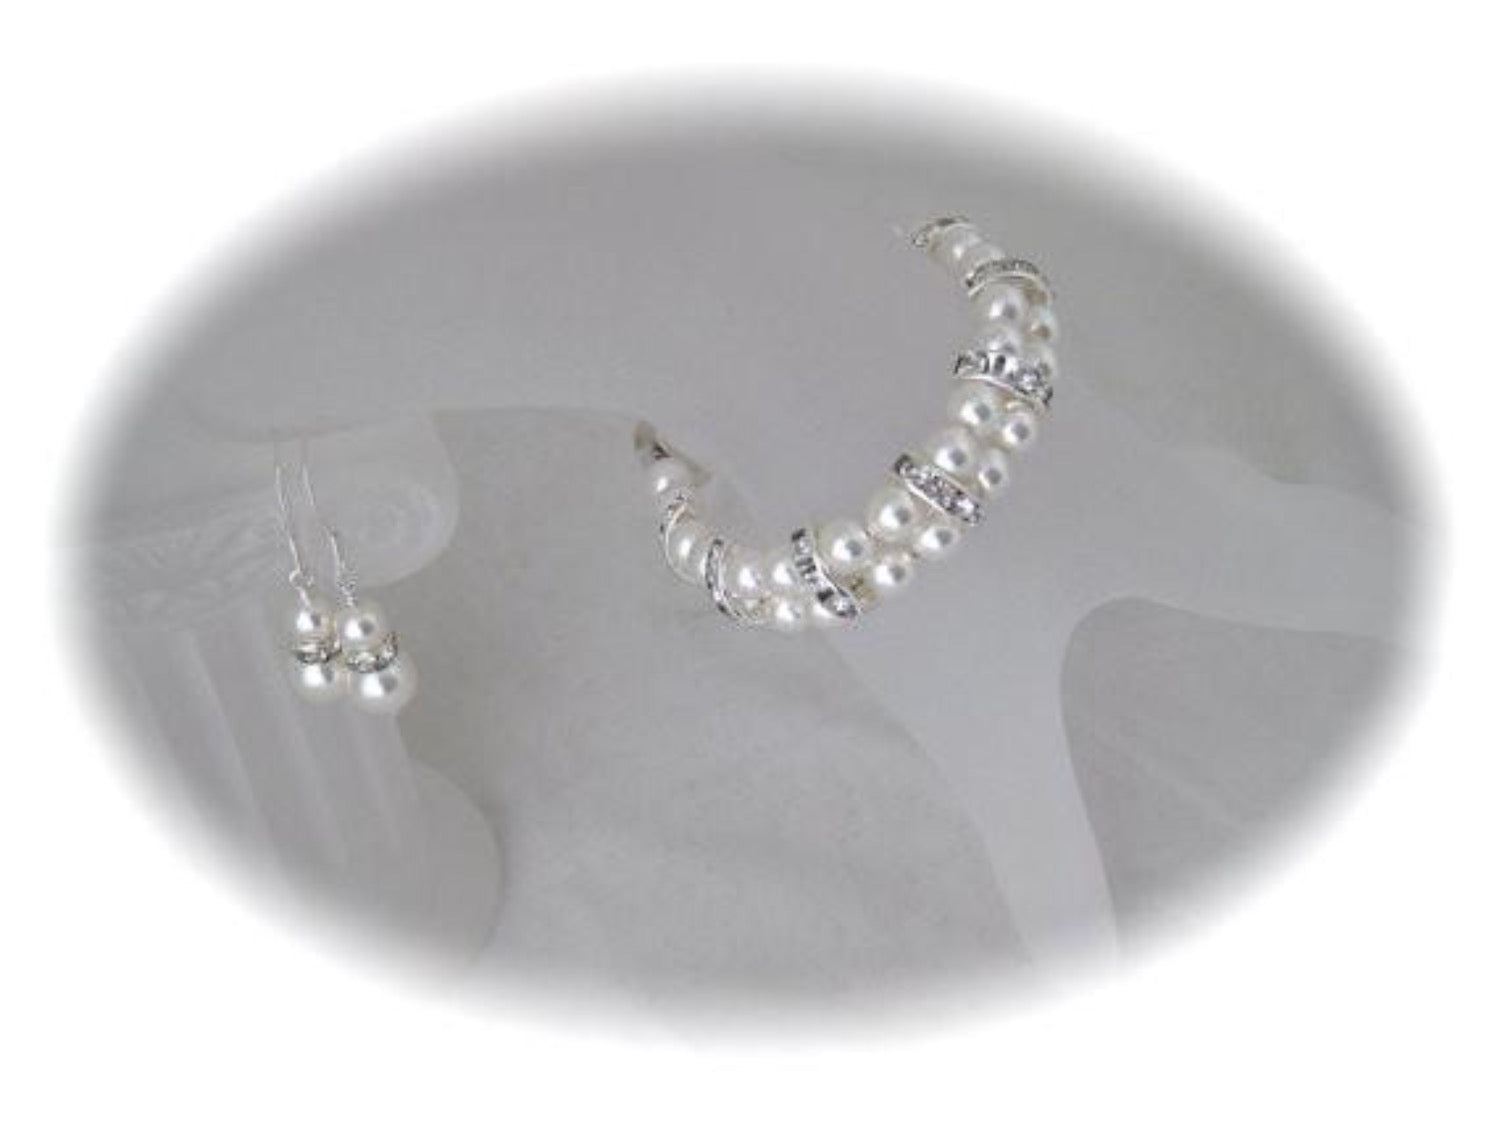 Bridal jewelry pearl and rhinestone bracelet and earrings - Clairesbridal - 2